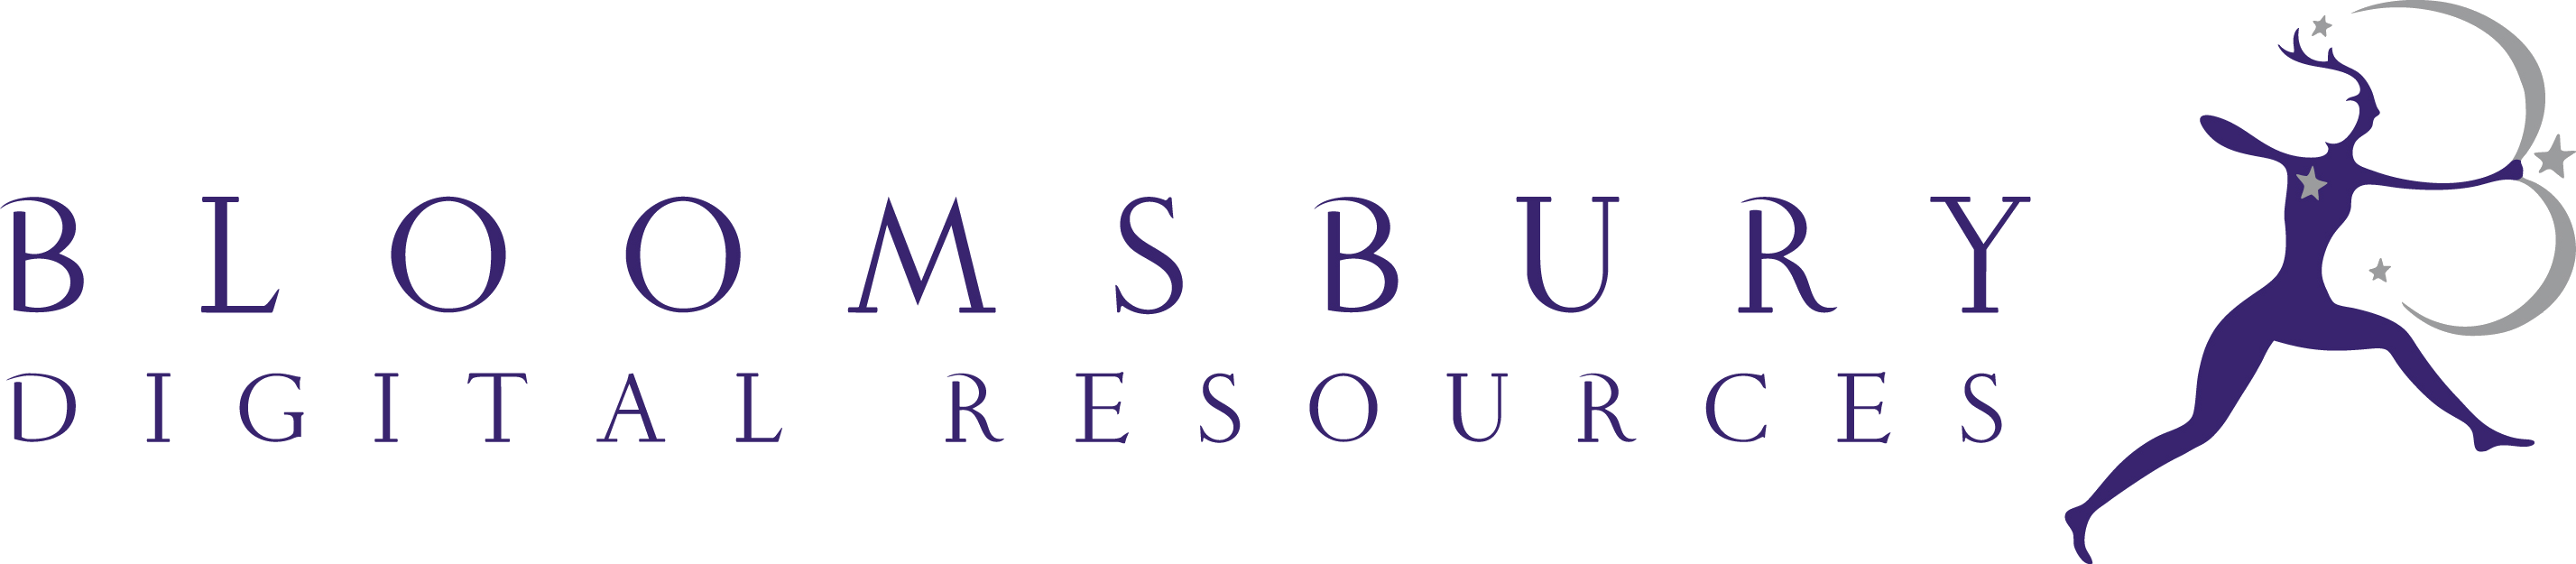 Bloomsbury Digital Resources